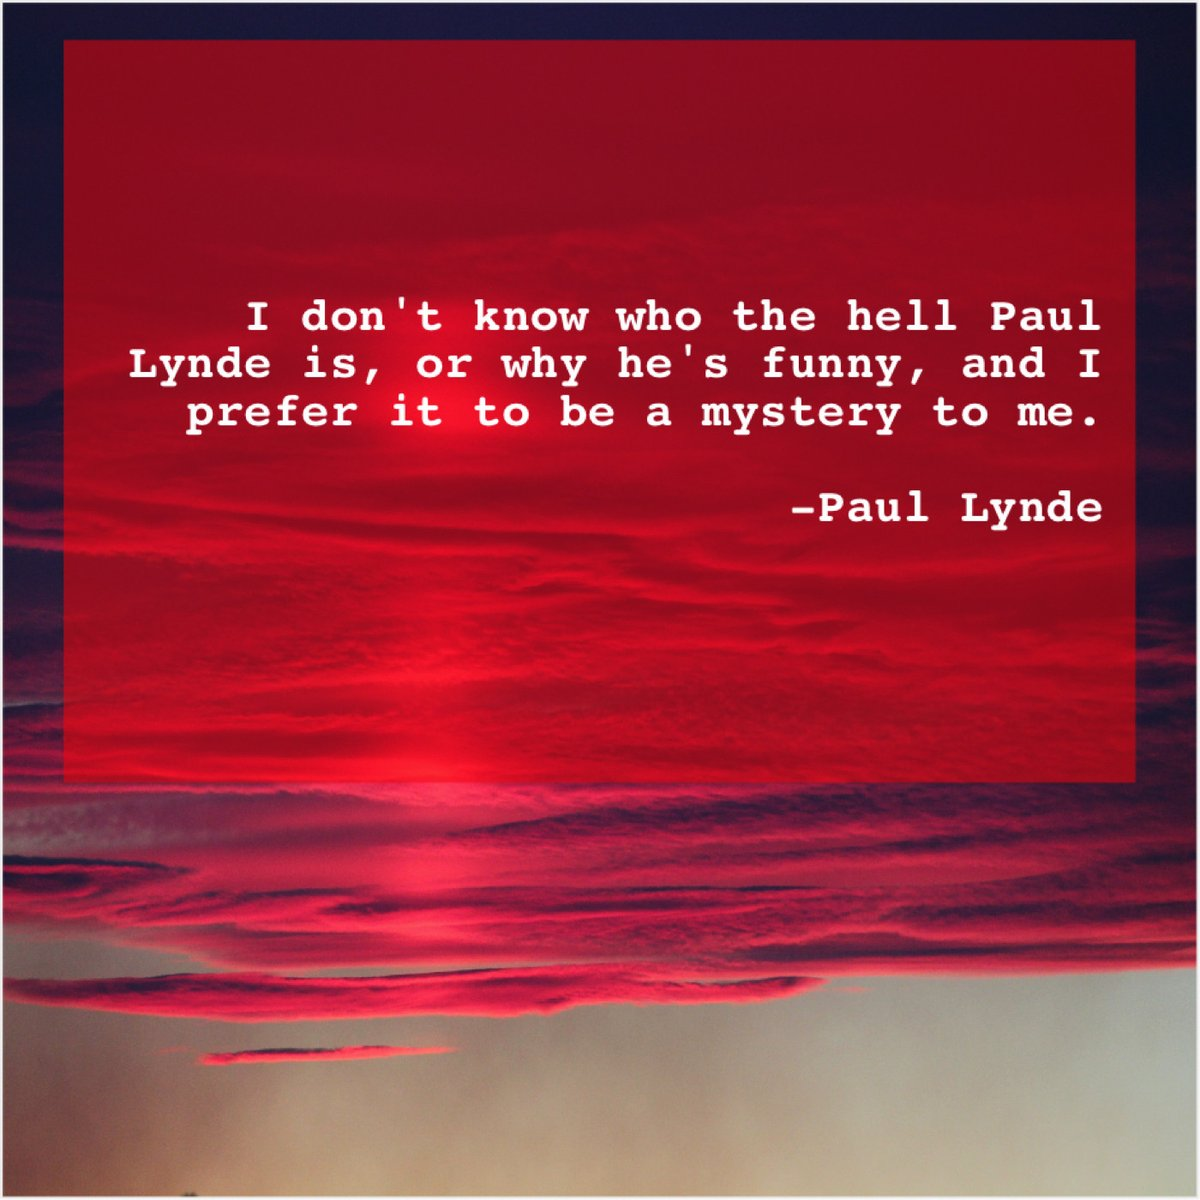 Paul Lynde – I don't know who the… http://dlvr.it/RNpd2m More Free Quotes #quoteoftheday #inspiration #motivationpic.twitter.com/rzgU6pQpPx